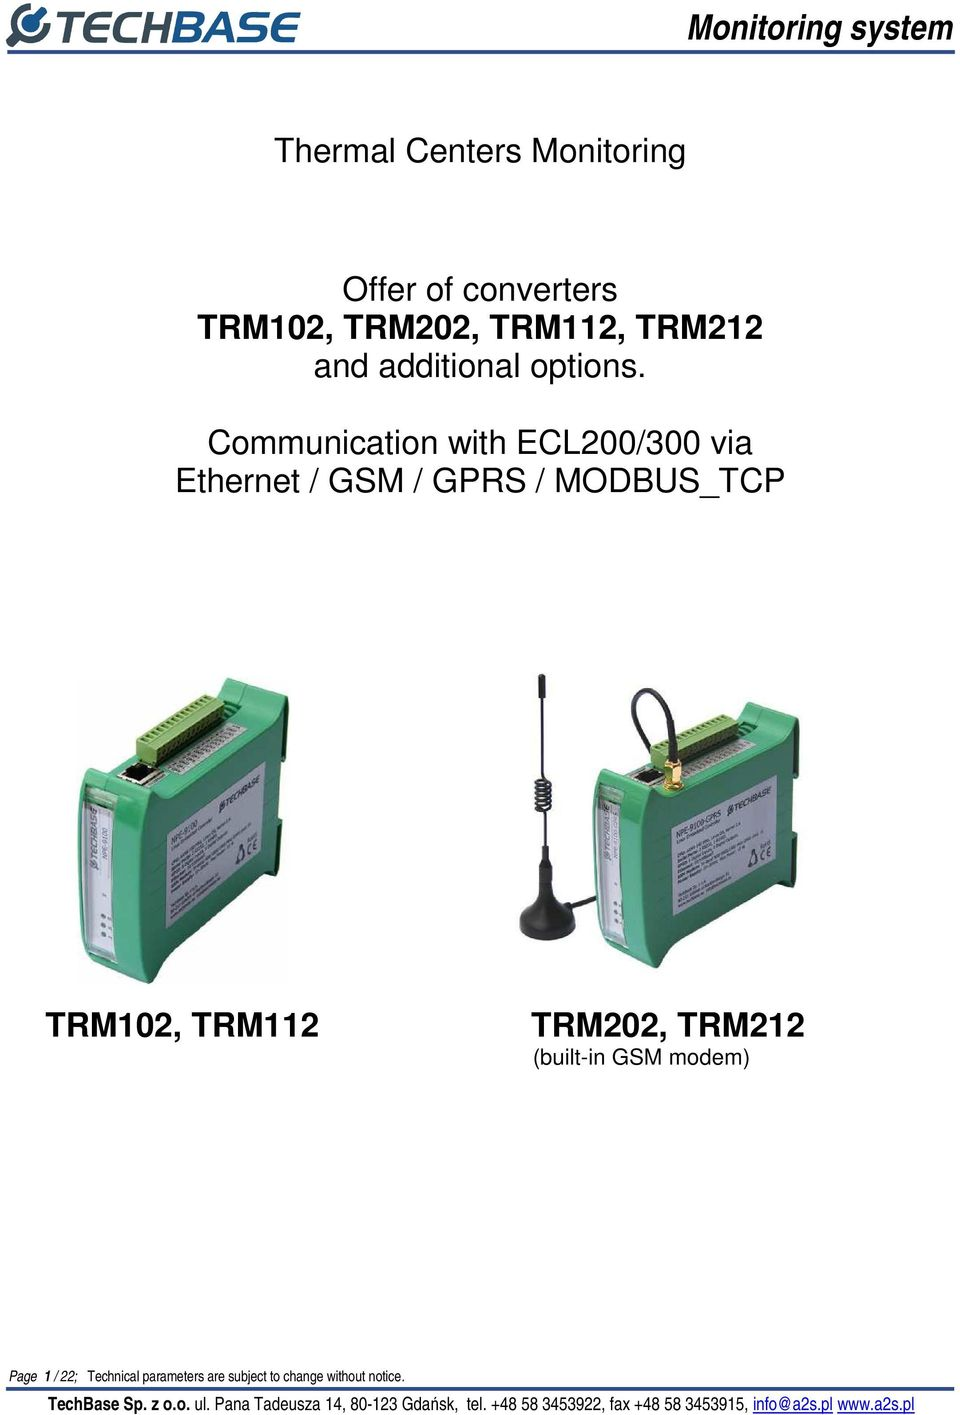 Communication with ECL200/300 via Ethernet / GSM / GPRS / MODBUS_TCP